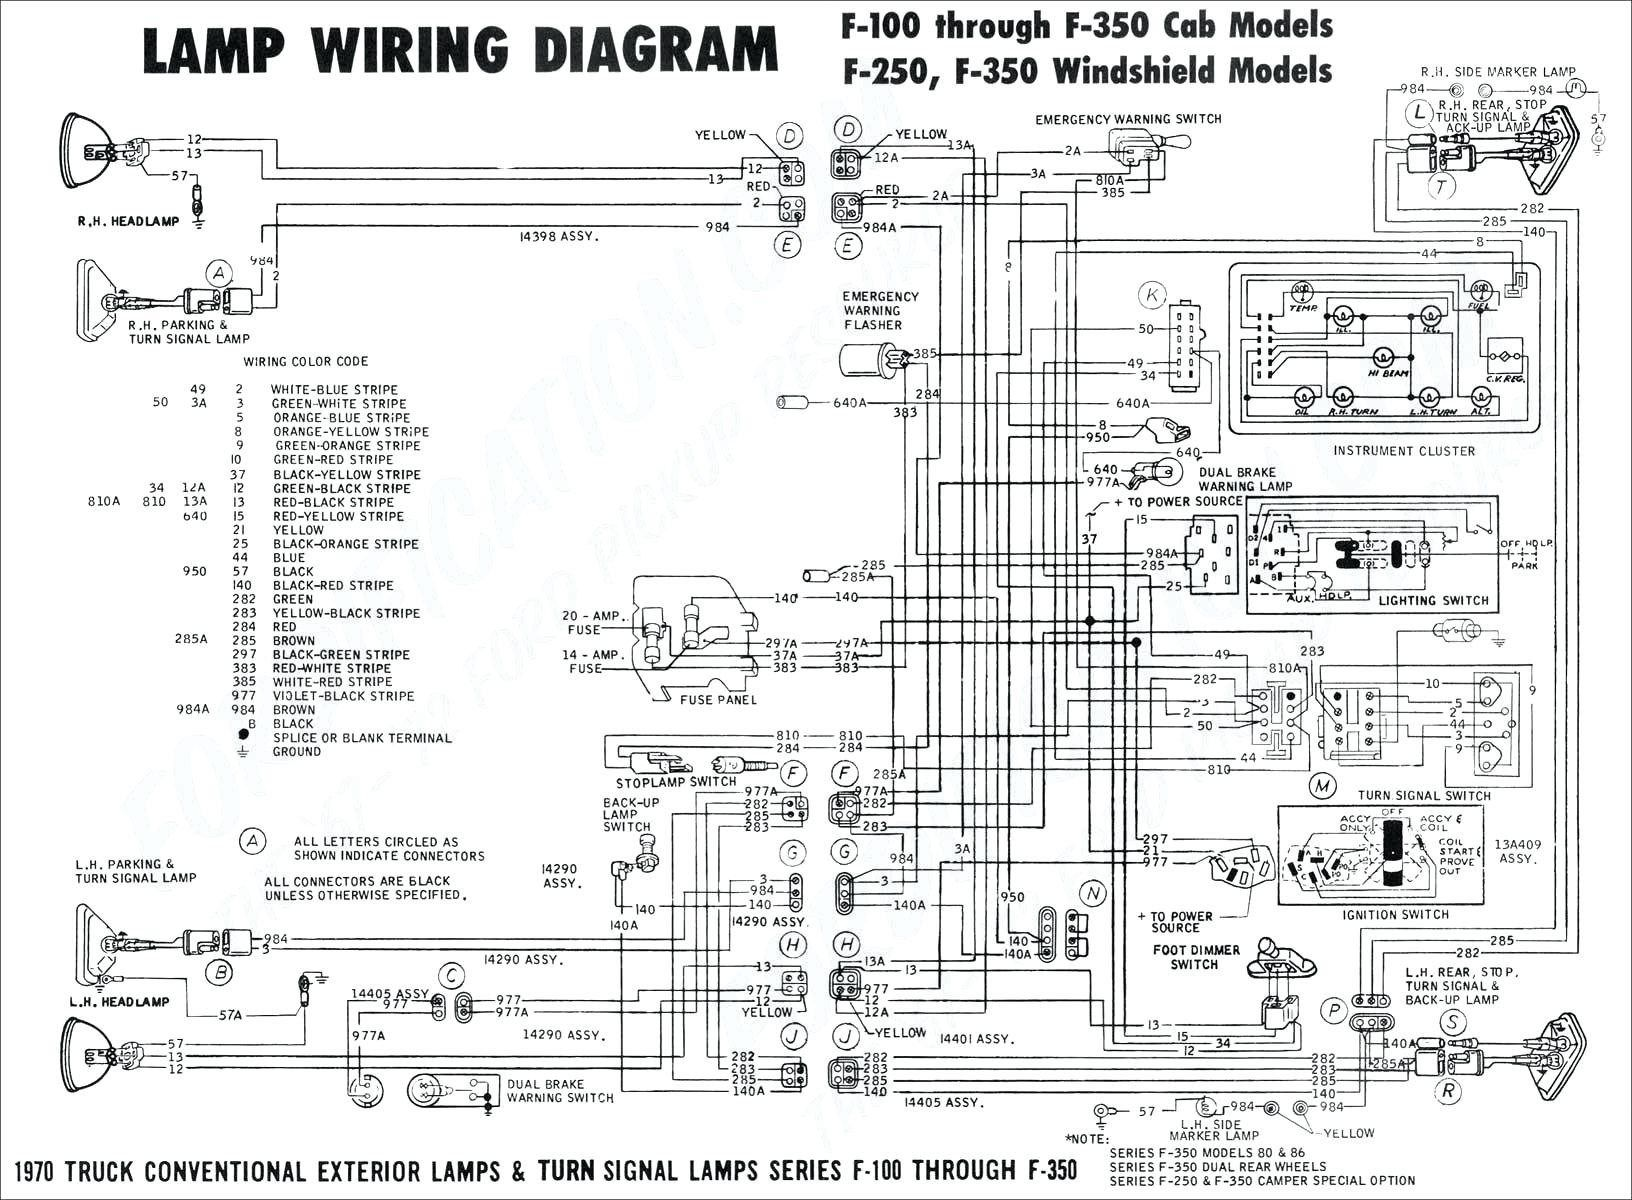 21 Ford Harness Wiring Diagram Bookingritzcarlton Info Electrical Wiring Diagram Electrical Diagram Trailer Wiring Diagram